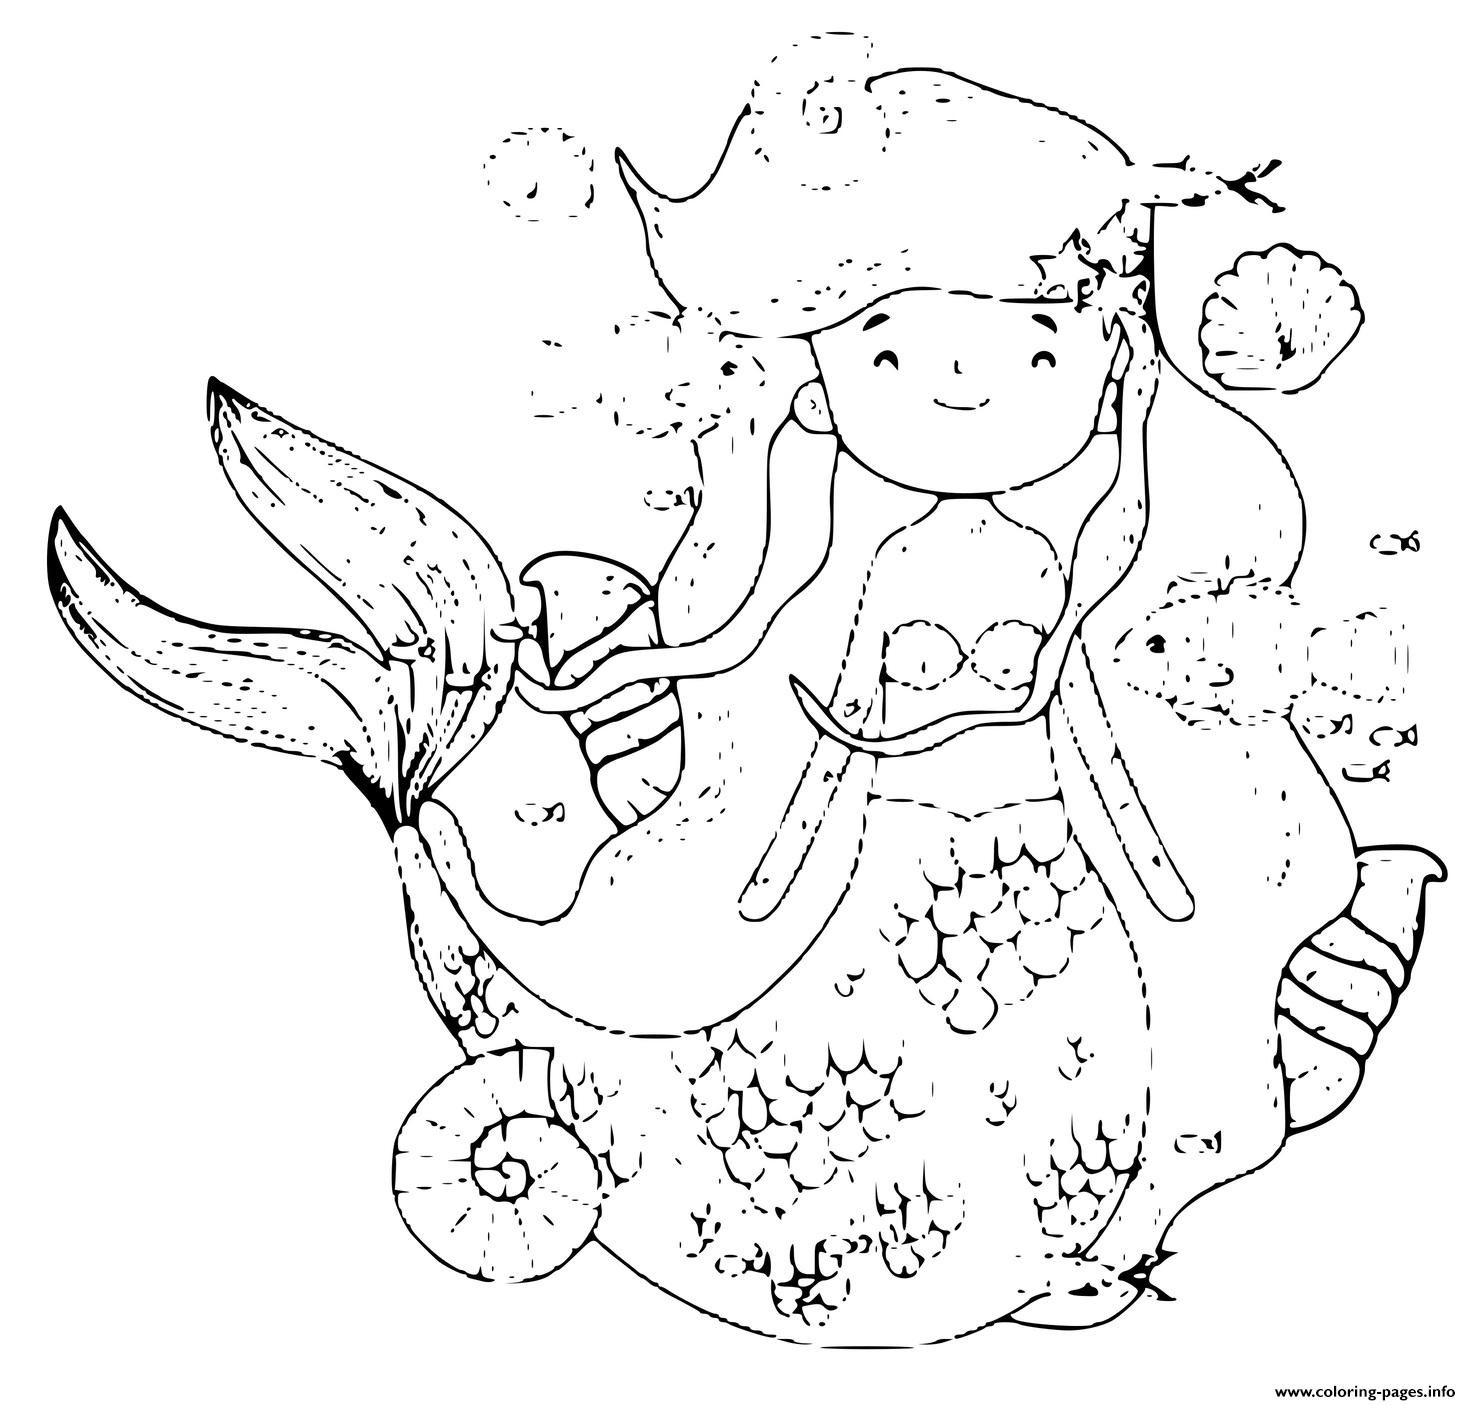 Sweet Little Mermaid Surrounded By Fish And Sea Creatures coloring pages